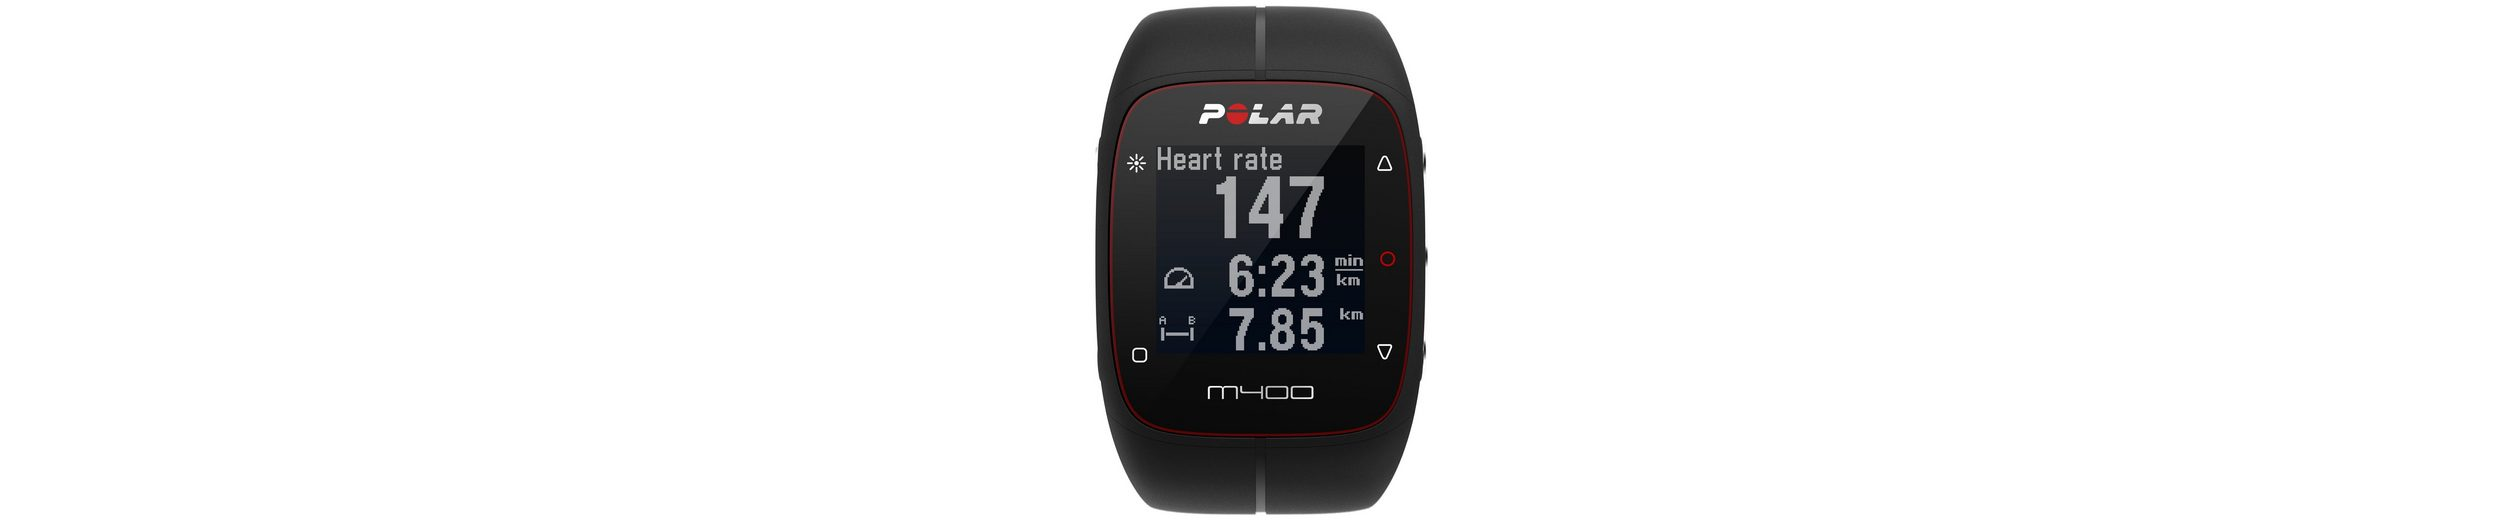 Polar GPS Sportuhr, »M400 Black HR«, inkl. Brustgurt